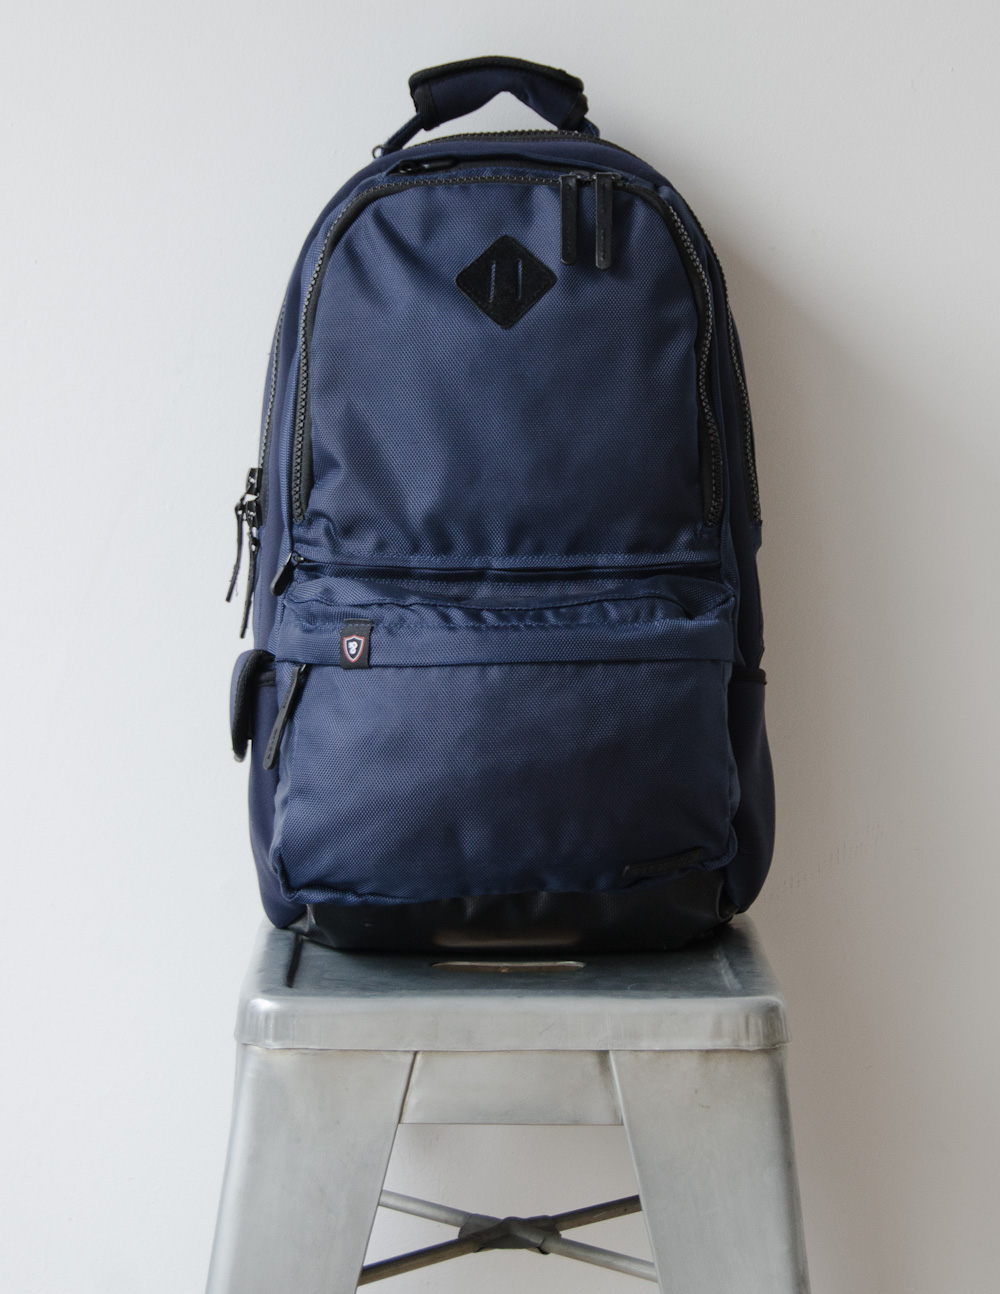 premium-picks-backpacks-3.jpg